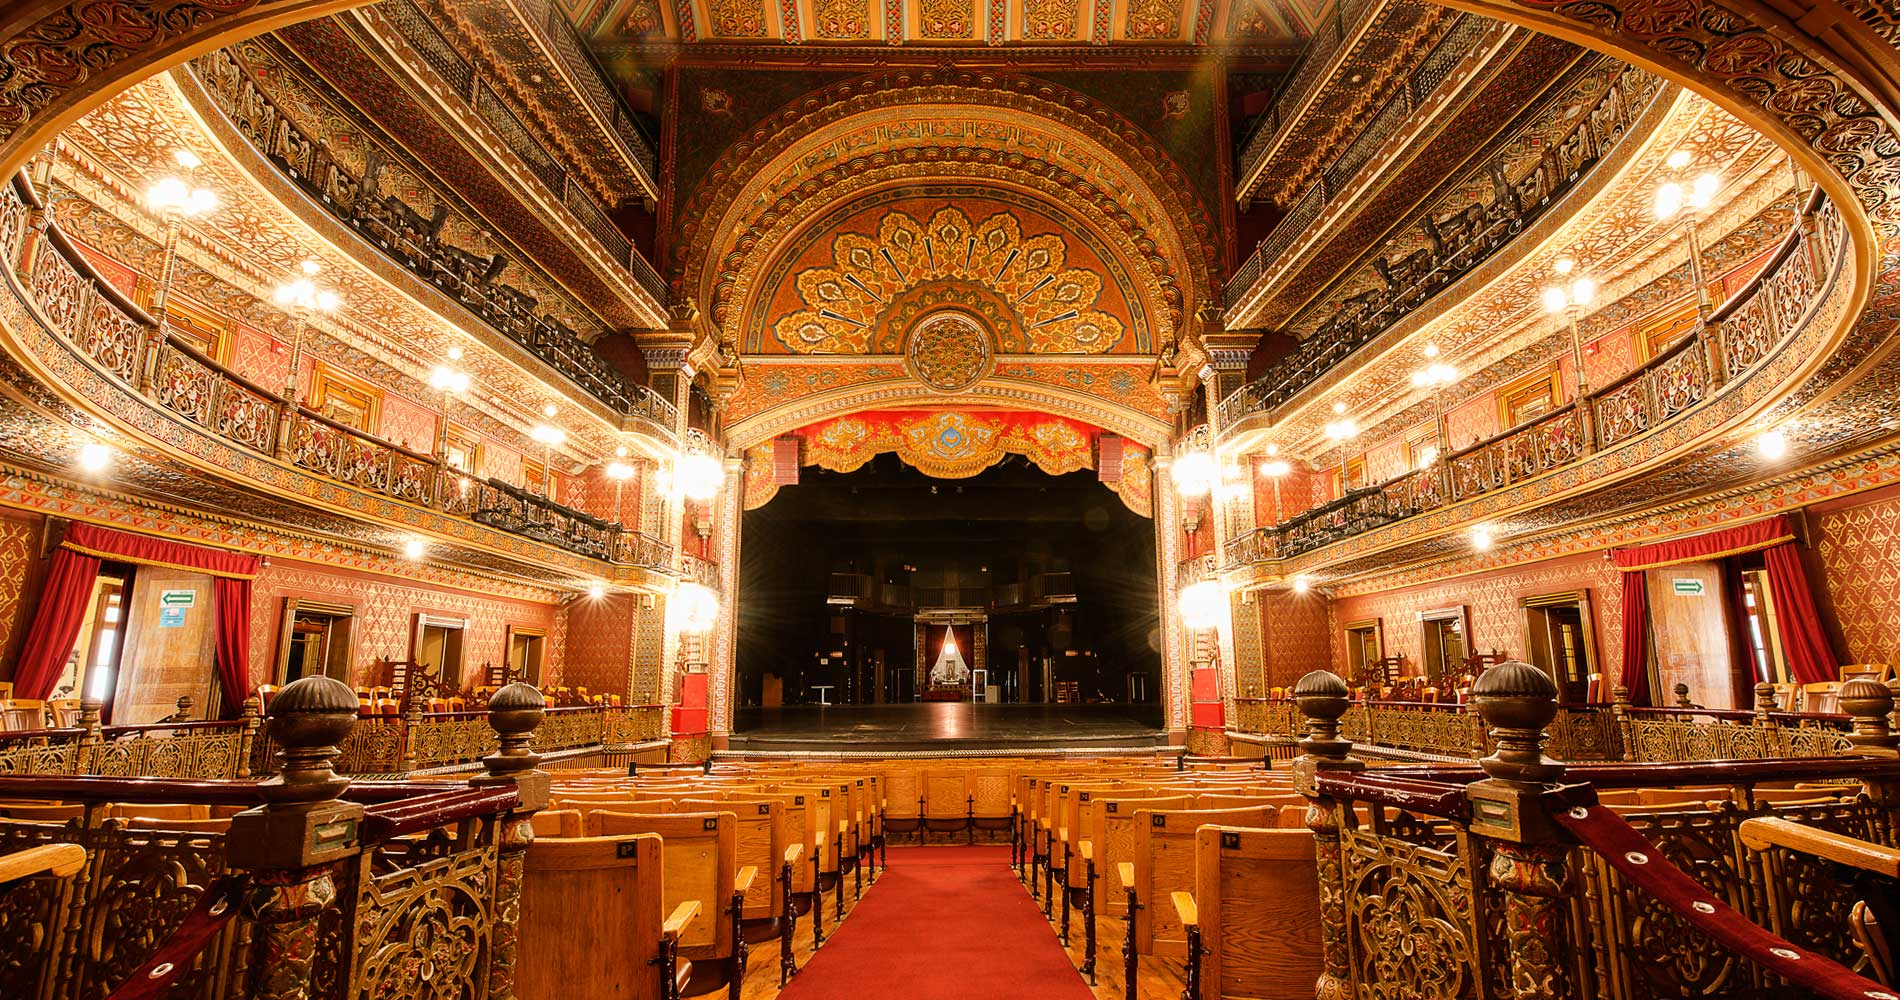 Inside the Juárez Theater